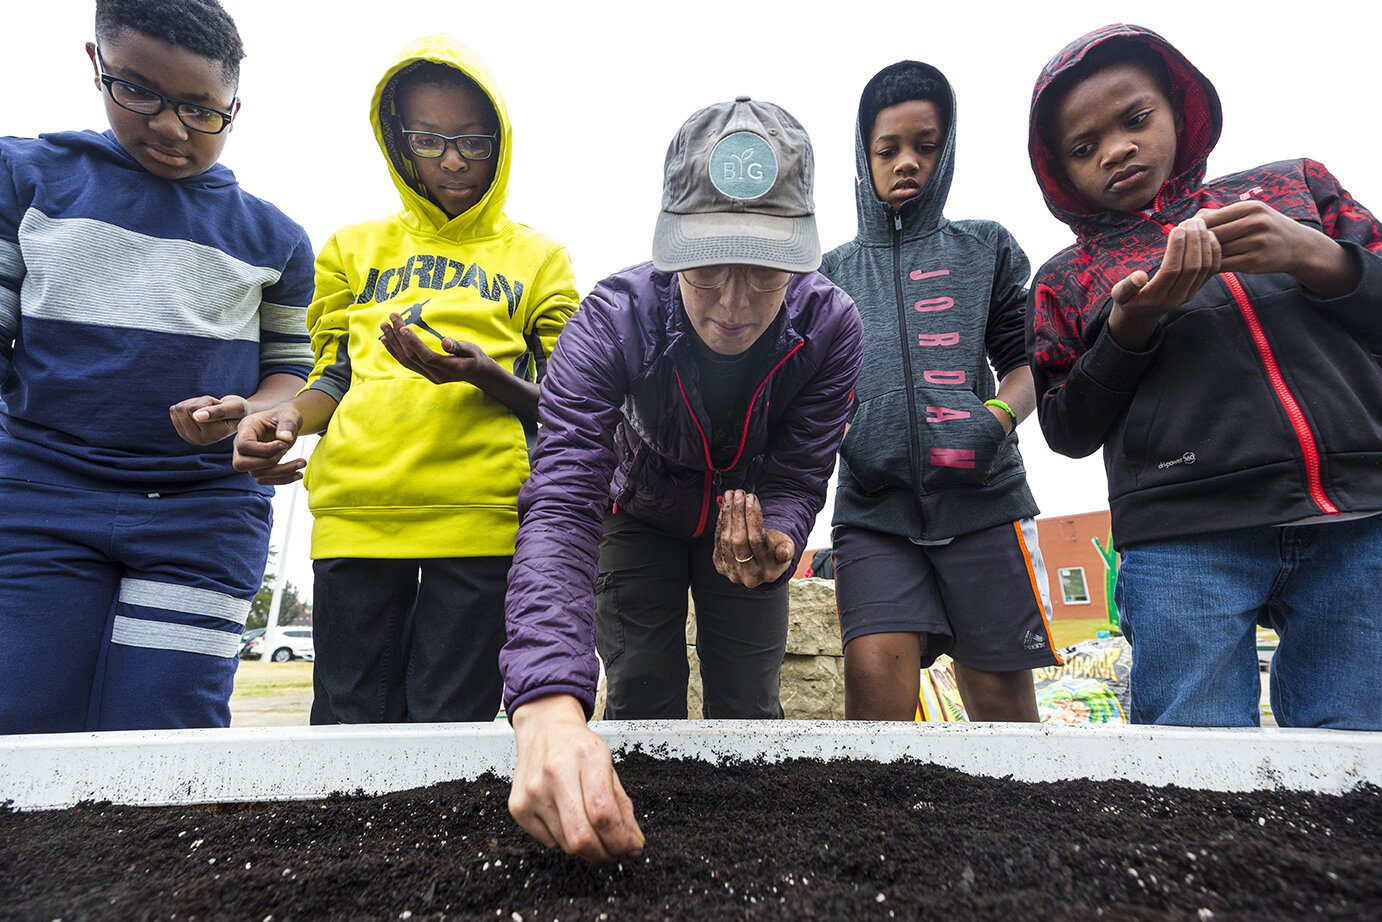 Erika Hansen of Big Green assists Highland Oaks Elementary students (left to right,) Kolin Pratcher, Elijah Smith, Deante Strong, and Xavier Smith in planting in their garden for local Planting Day in  Memphis, TN